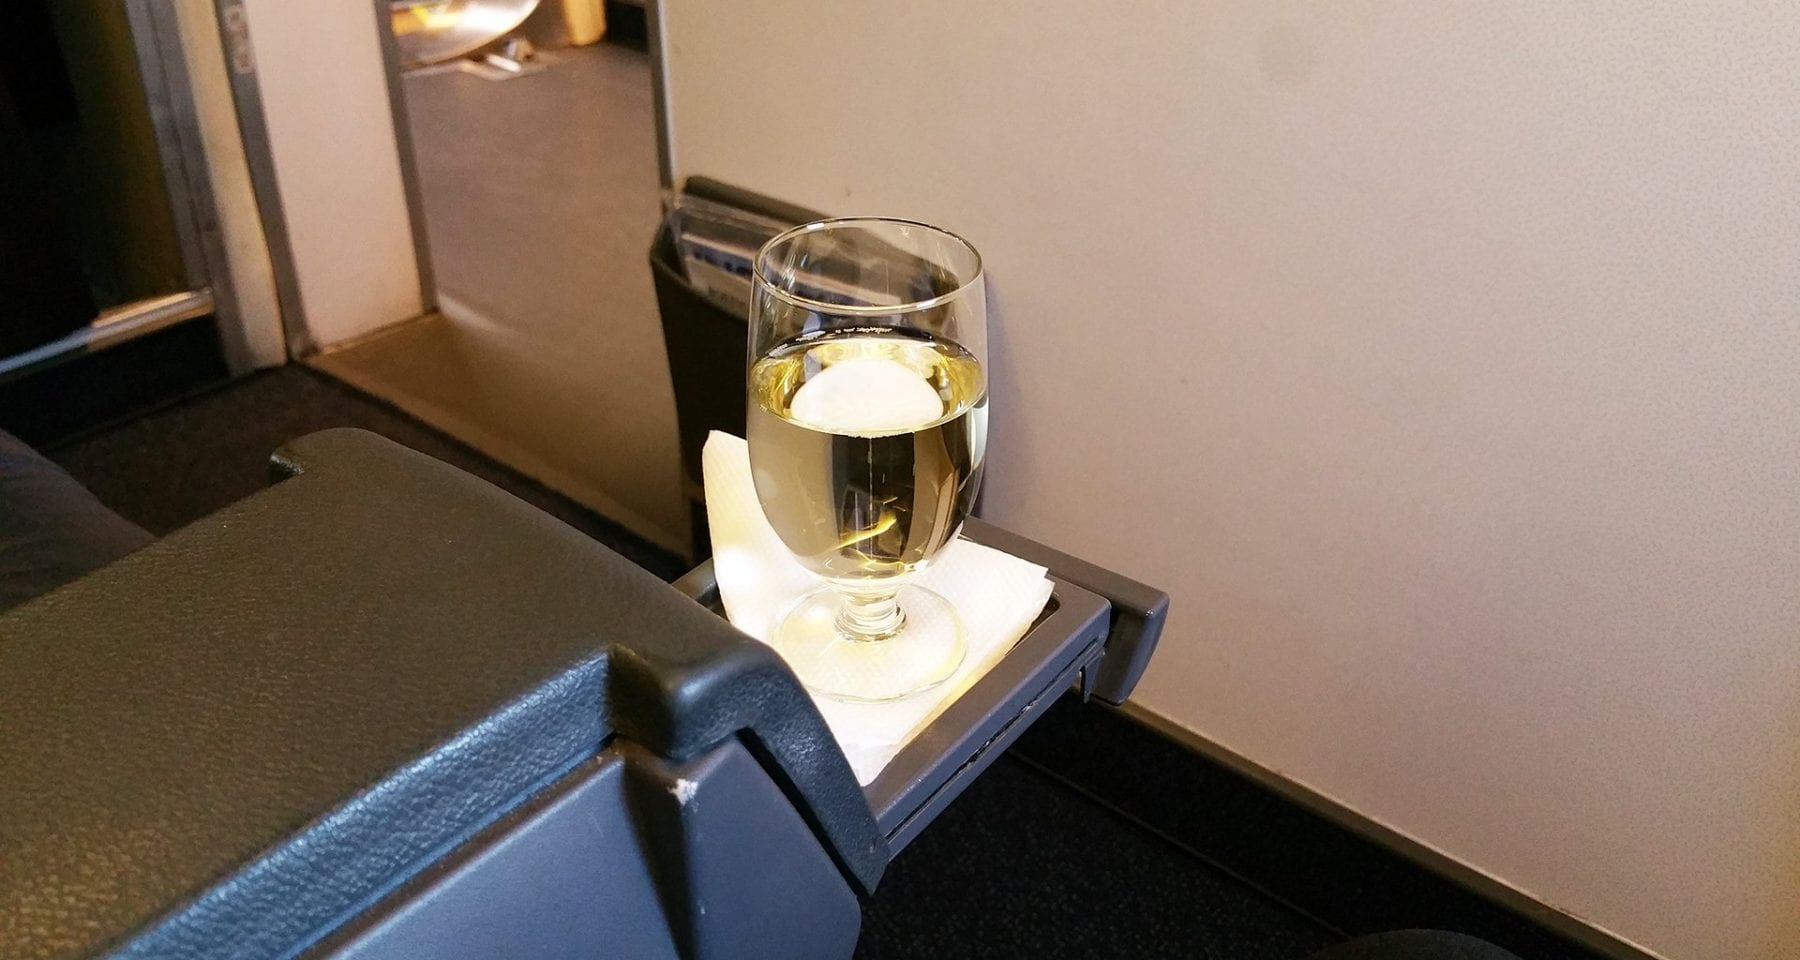 Tarom Airlines Welcome Drink of Wine